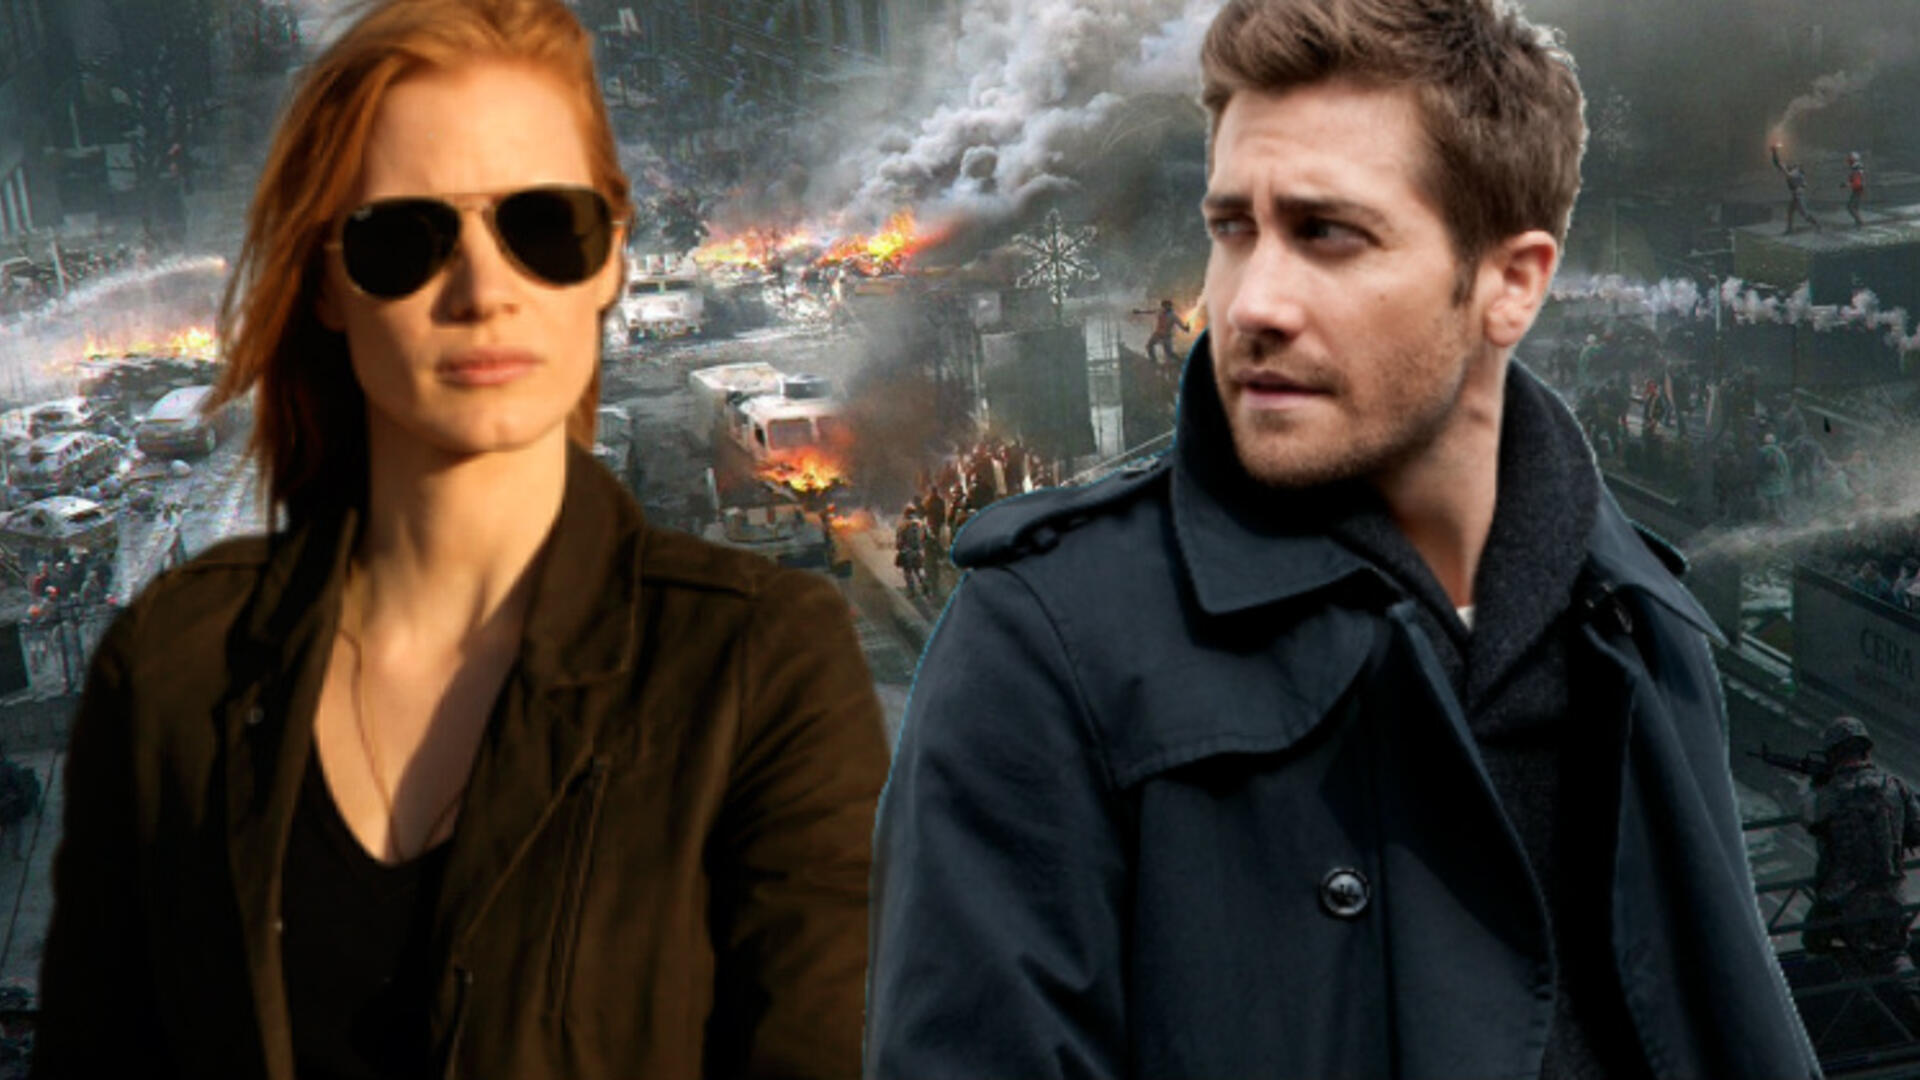 The Division is Coming to Film with Jessica Chastain and Jake Gyllenhaal